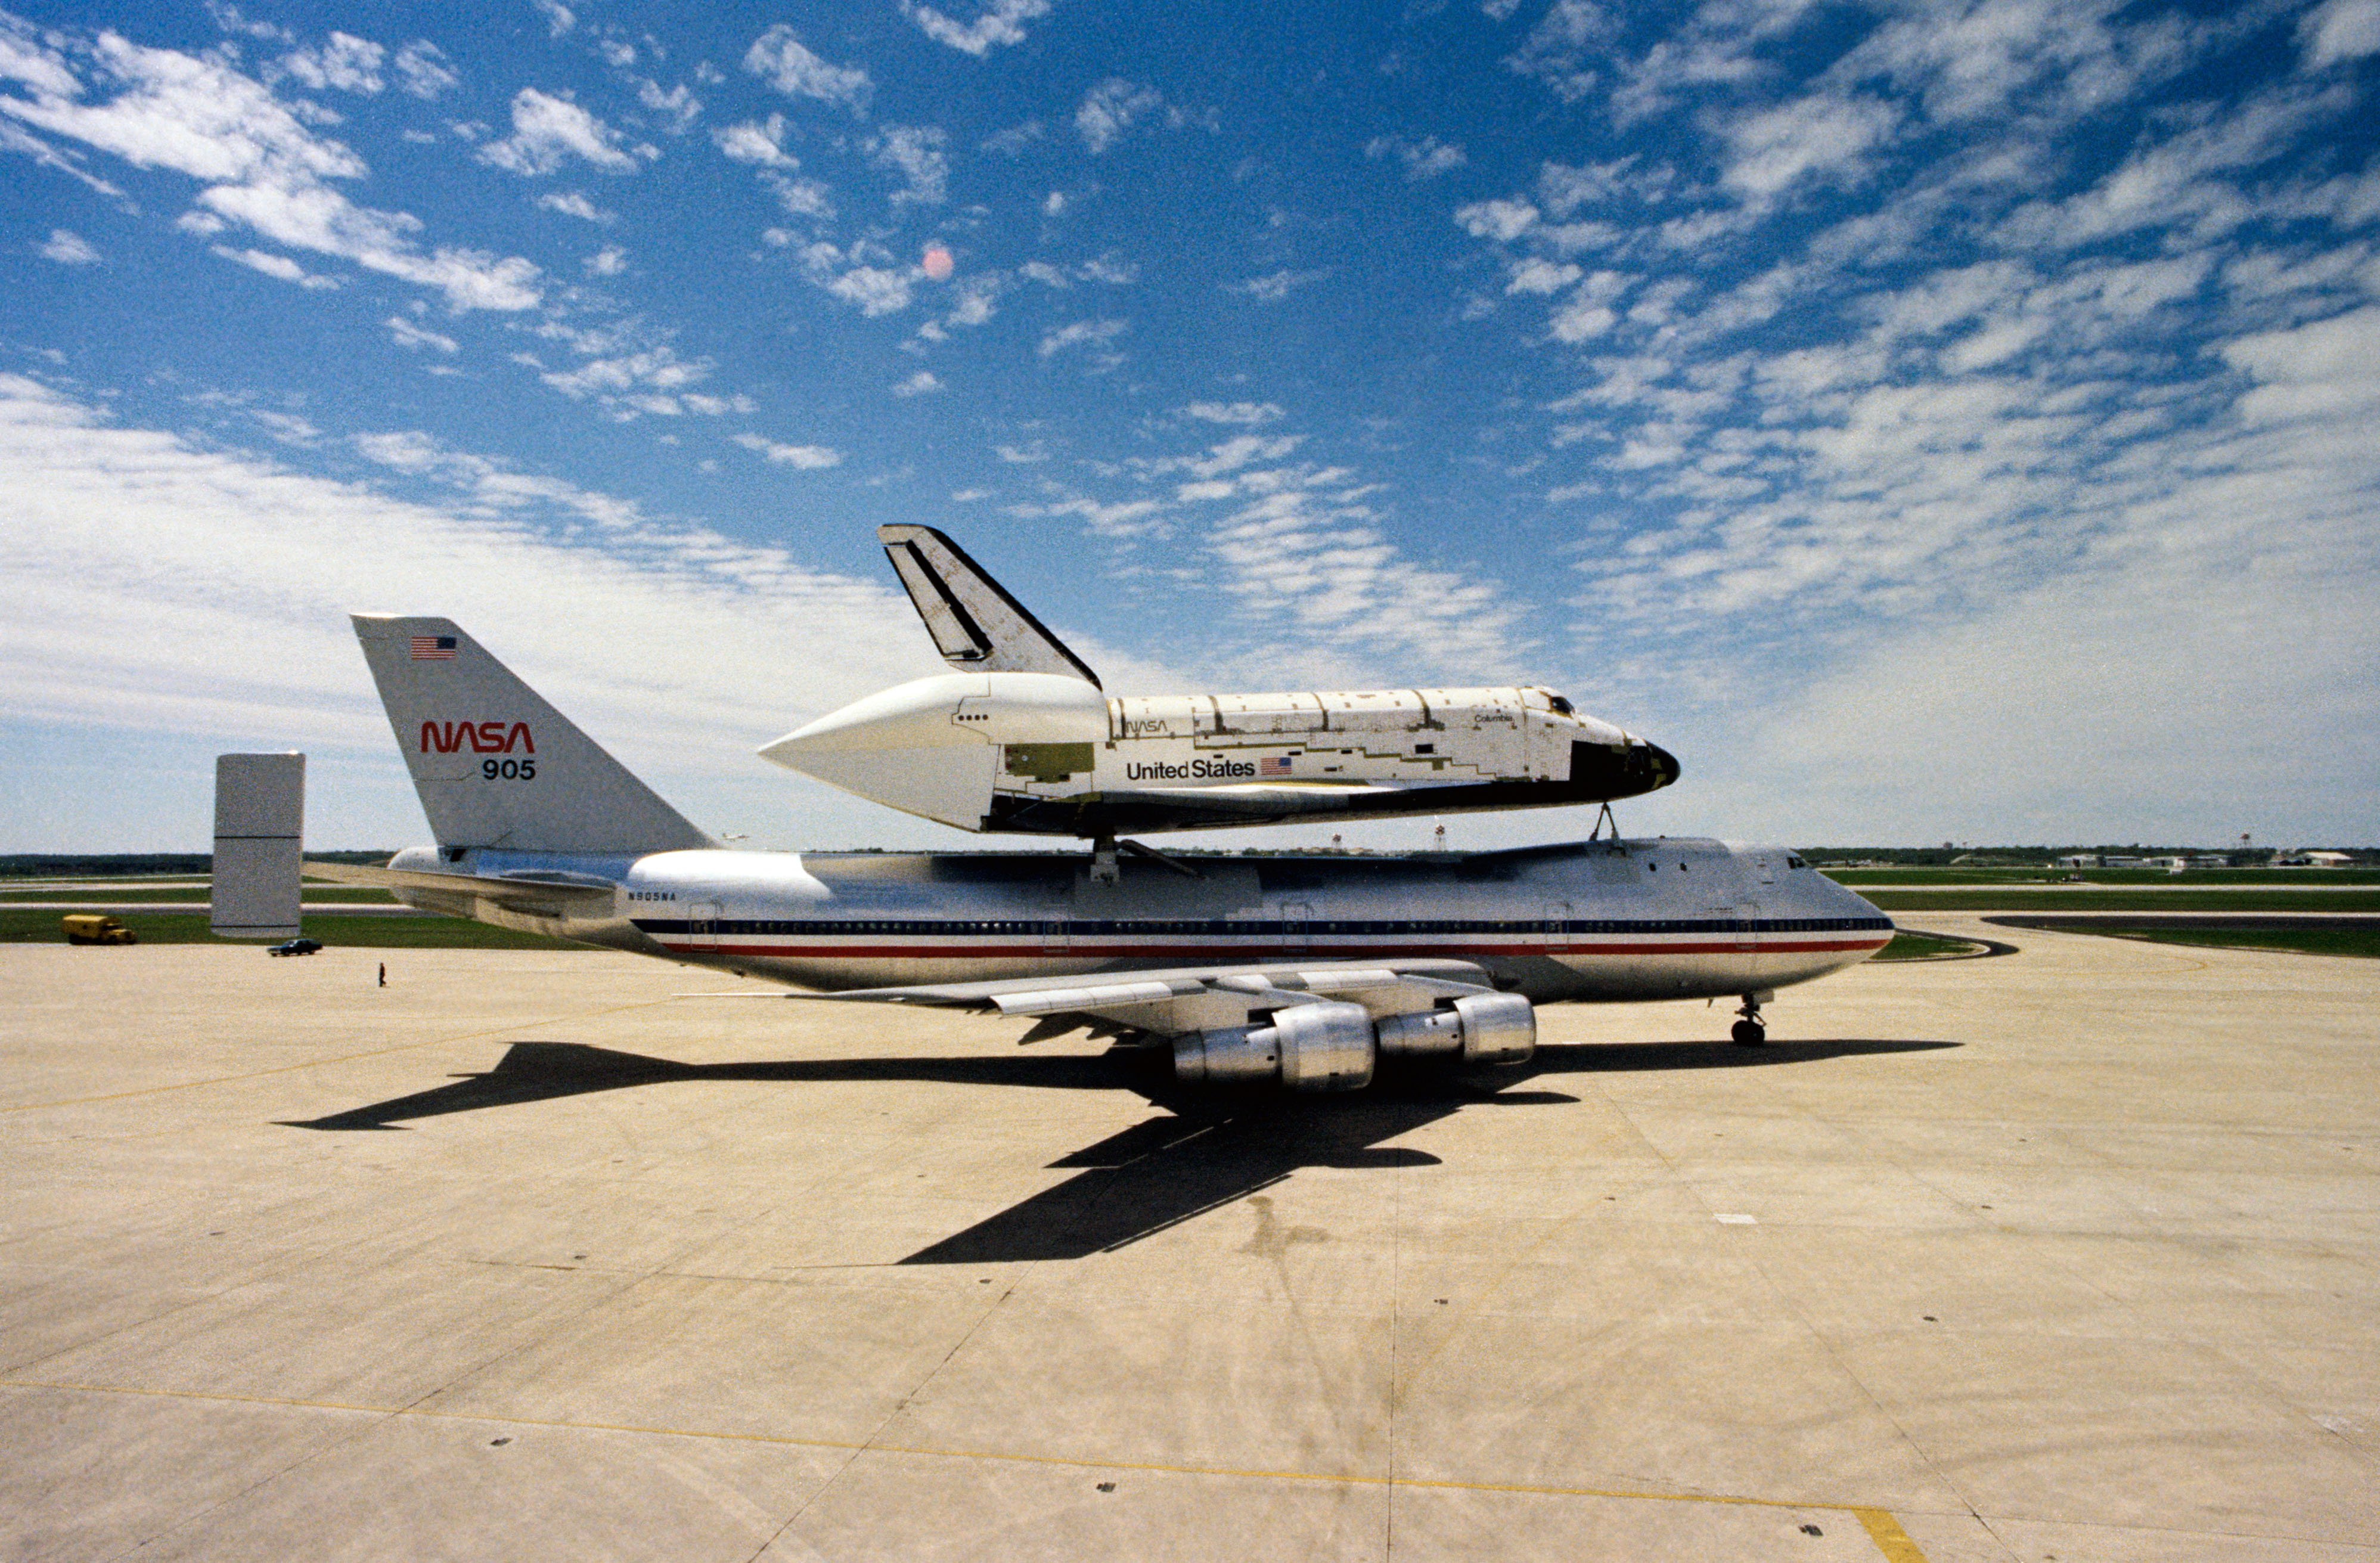 kelly afb space shuttle carrier aircraft - photo #37